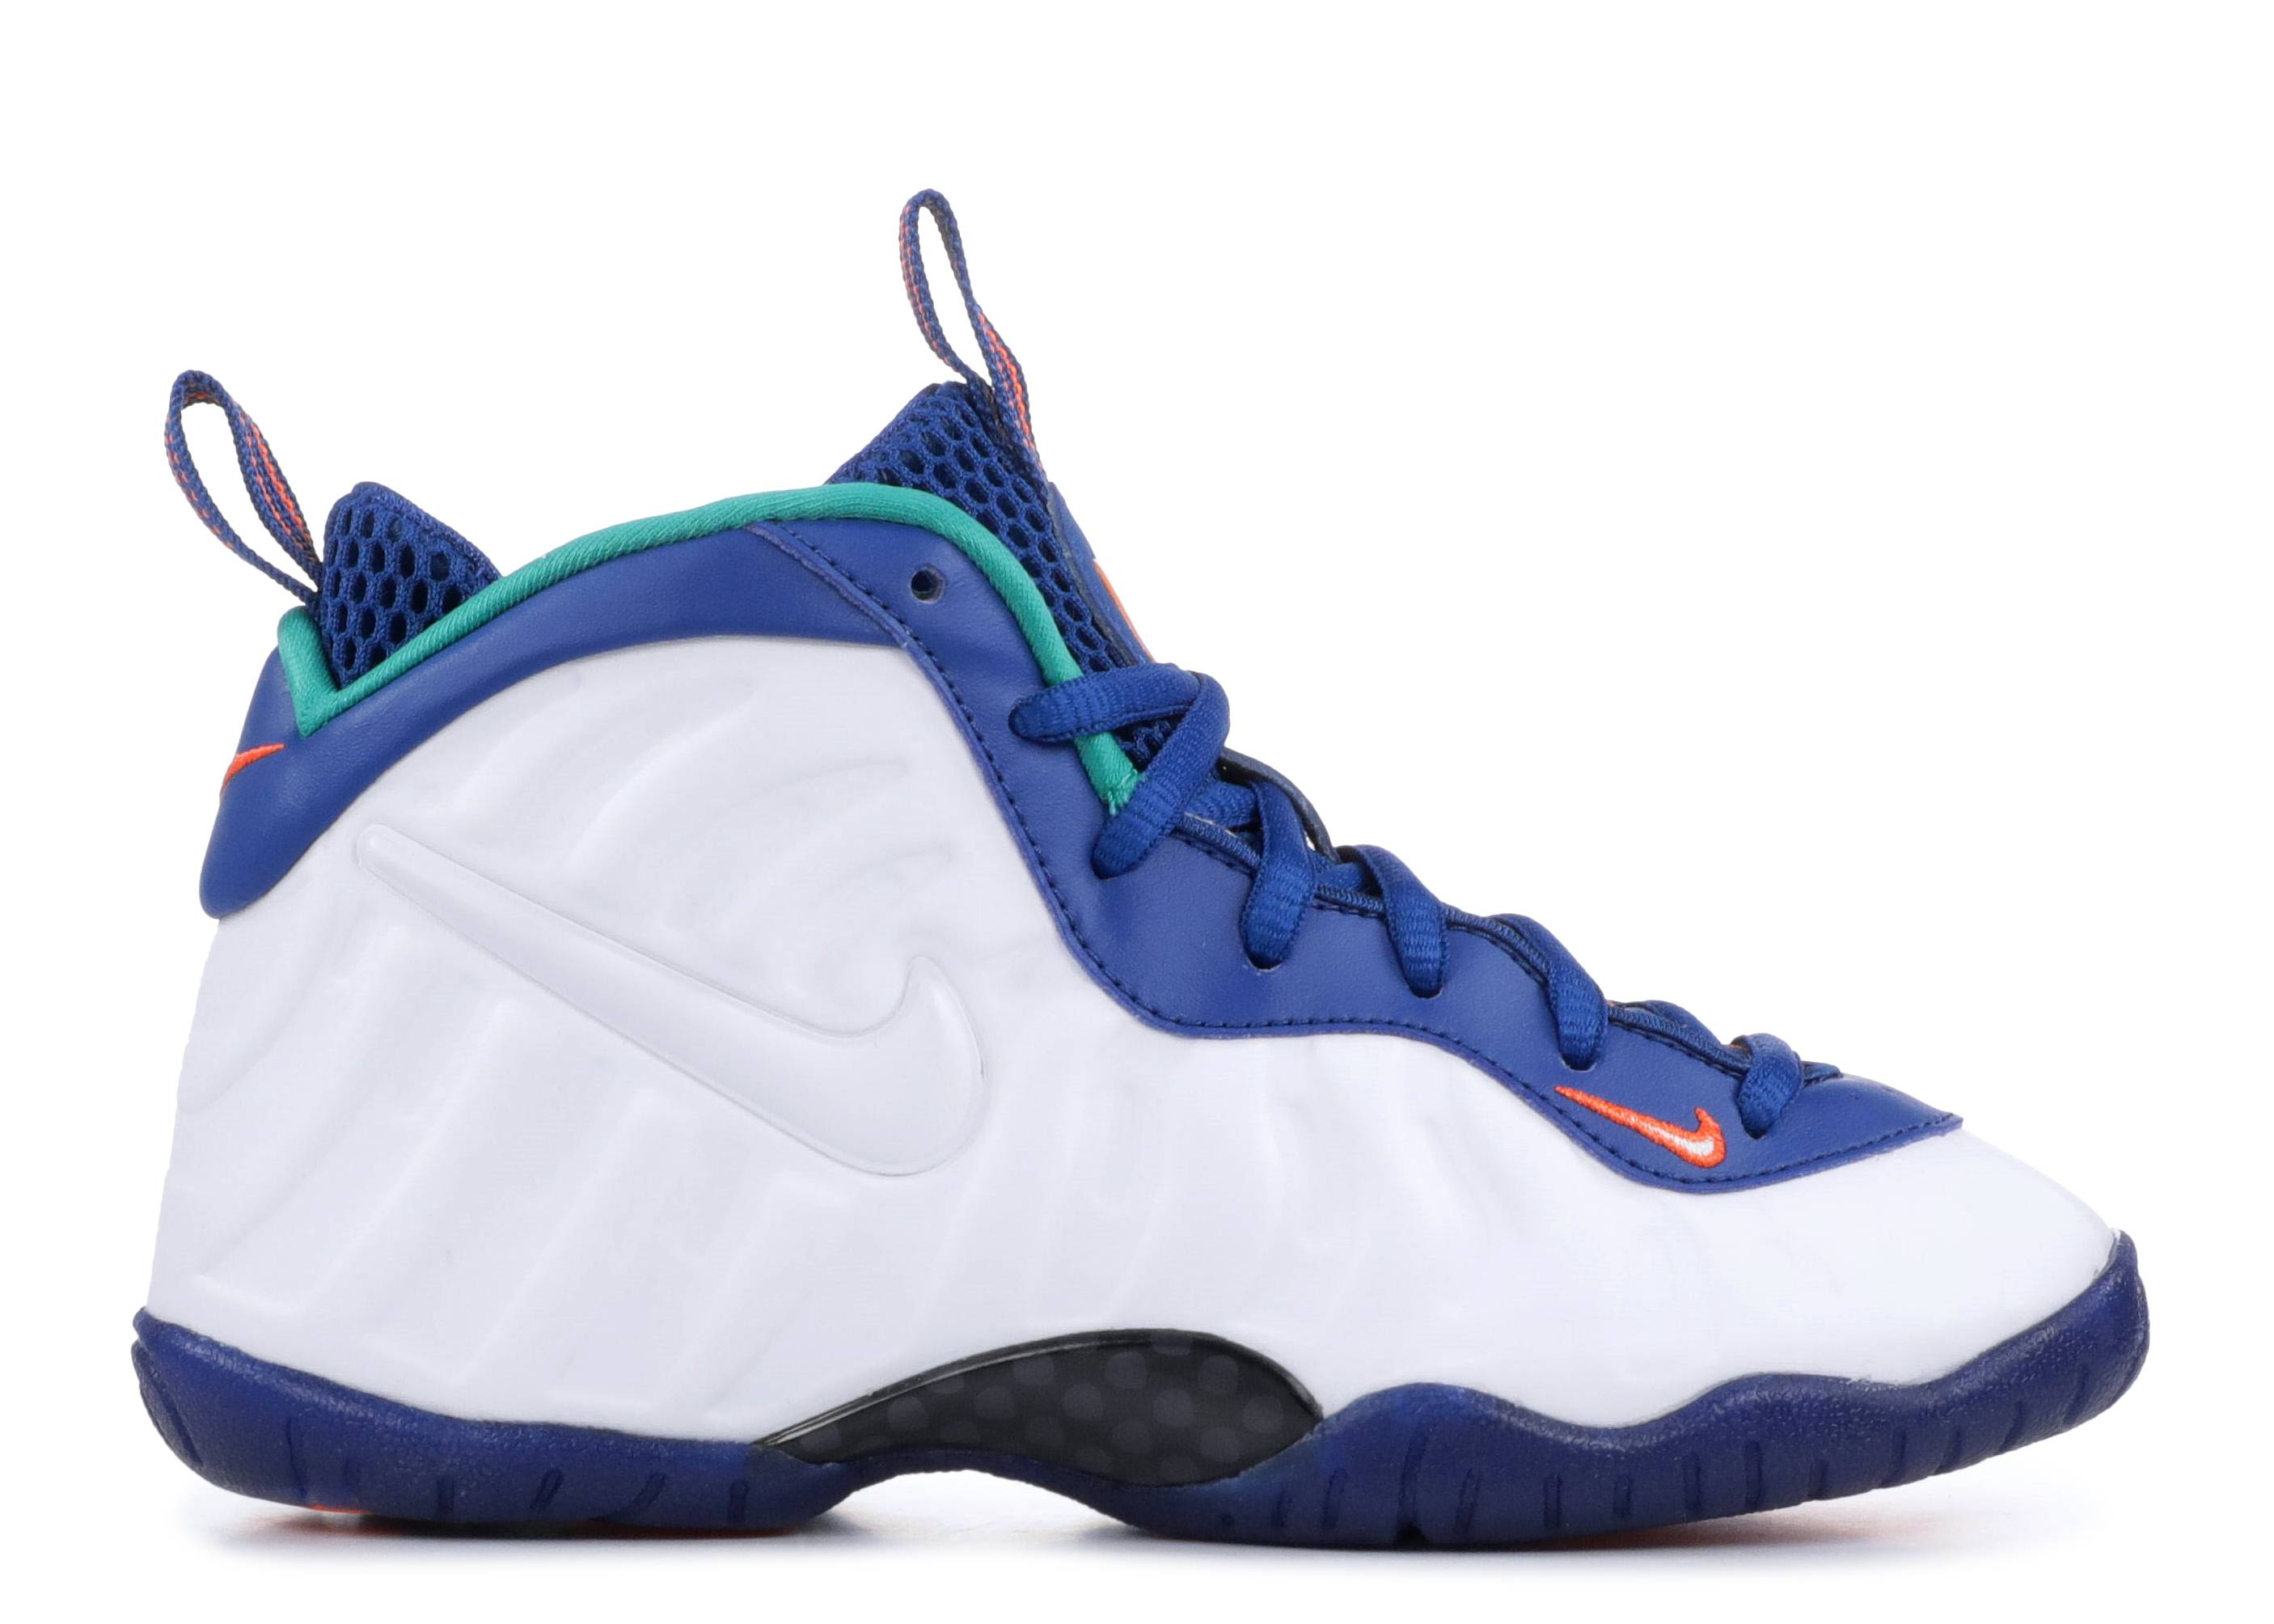 55405416602df Air Foamposite One - Nike - 843755 404 - gym blue white cone neptune ...